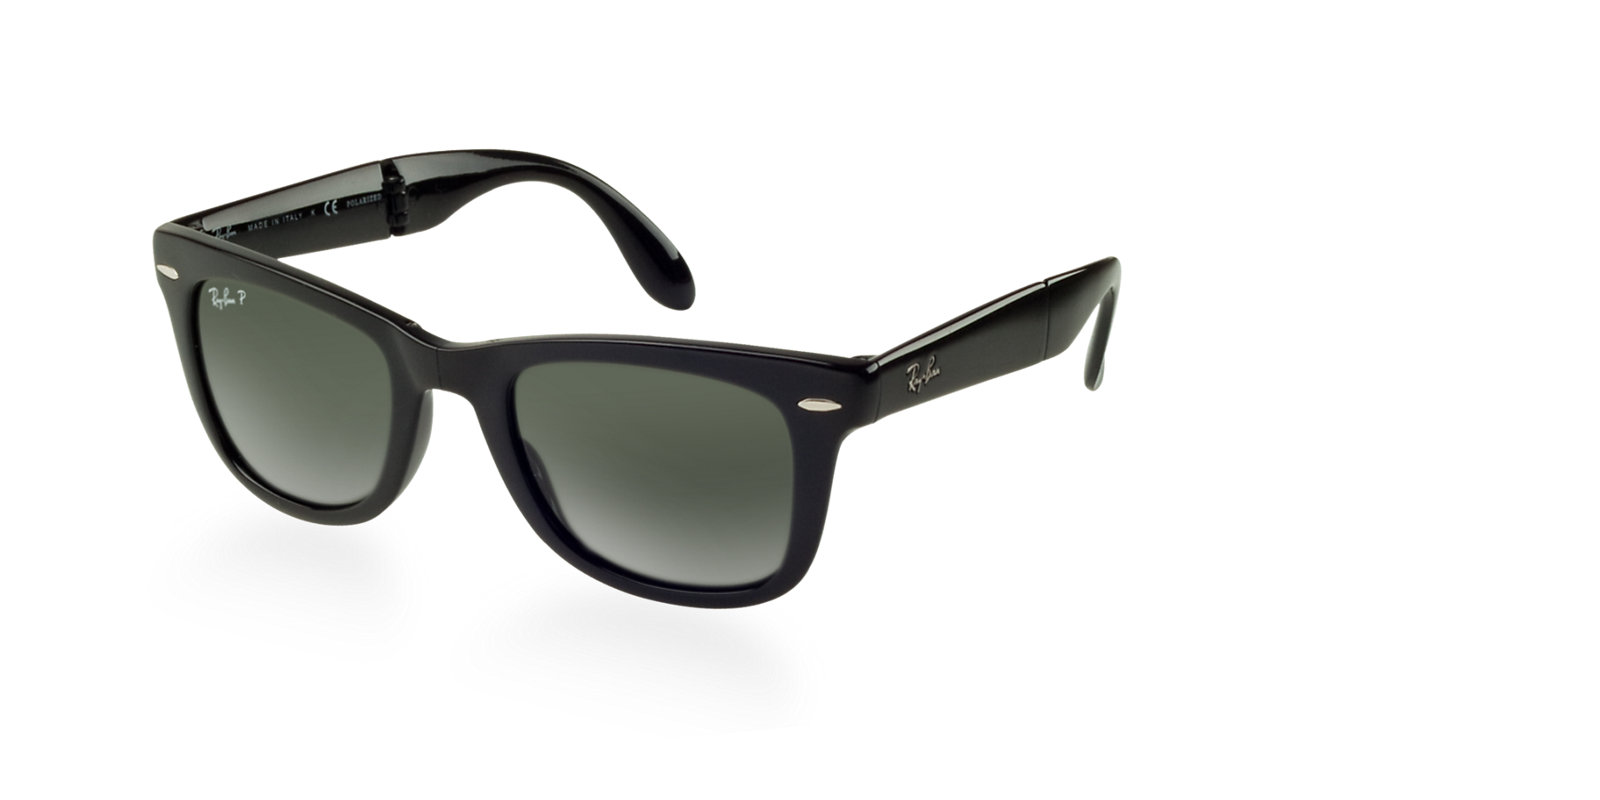 0461f8389cc Previous  Next. Previous  Next. RAY-BAN RB4105 601 58 BLACK POLARIZED  FOLDING WAYFARER SUNGLASSES